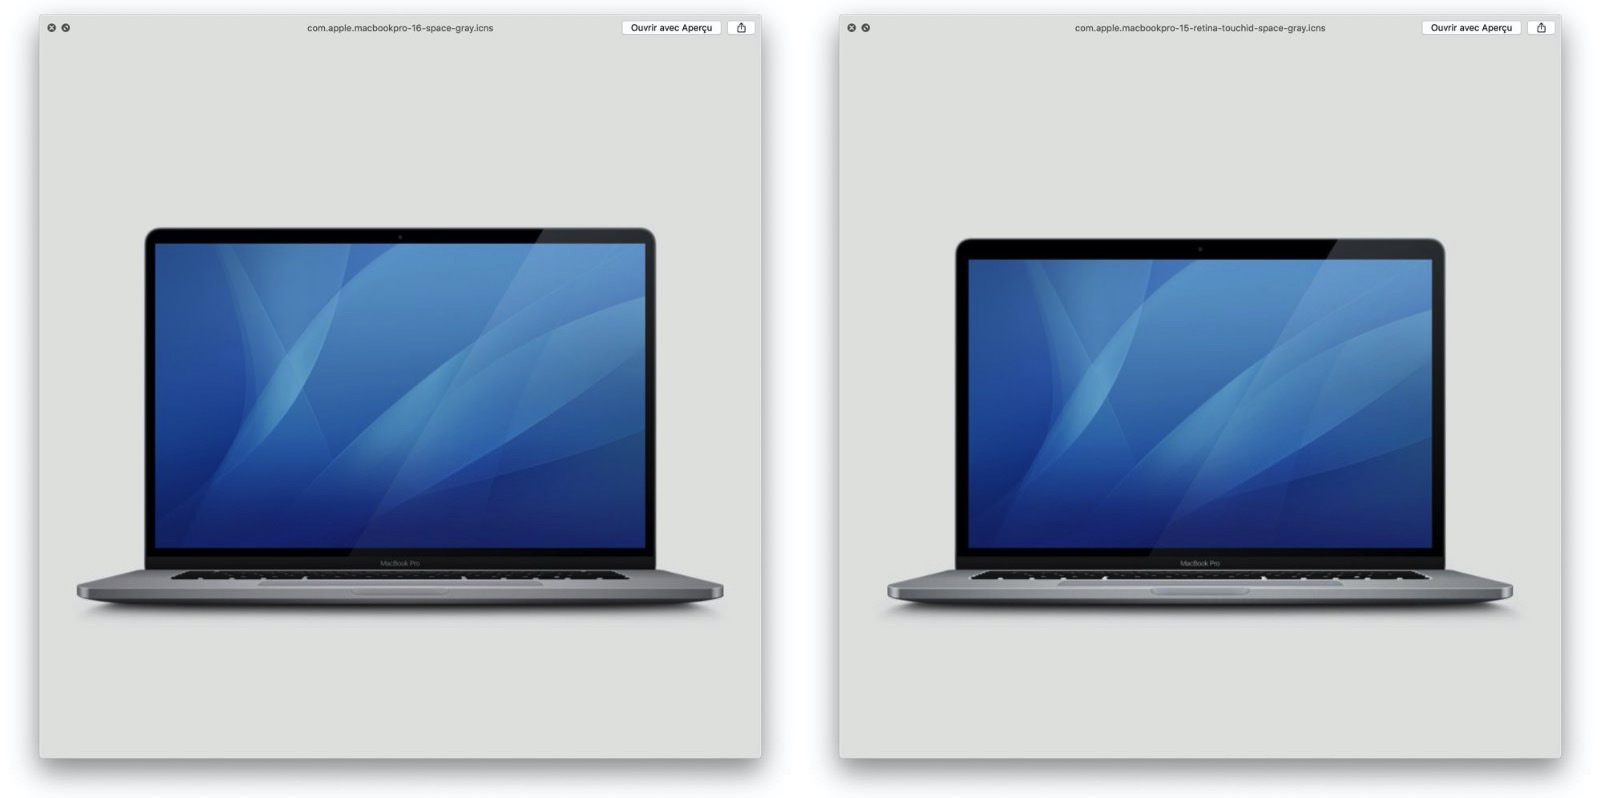 MacBook Pro 16inch model icons